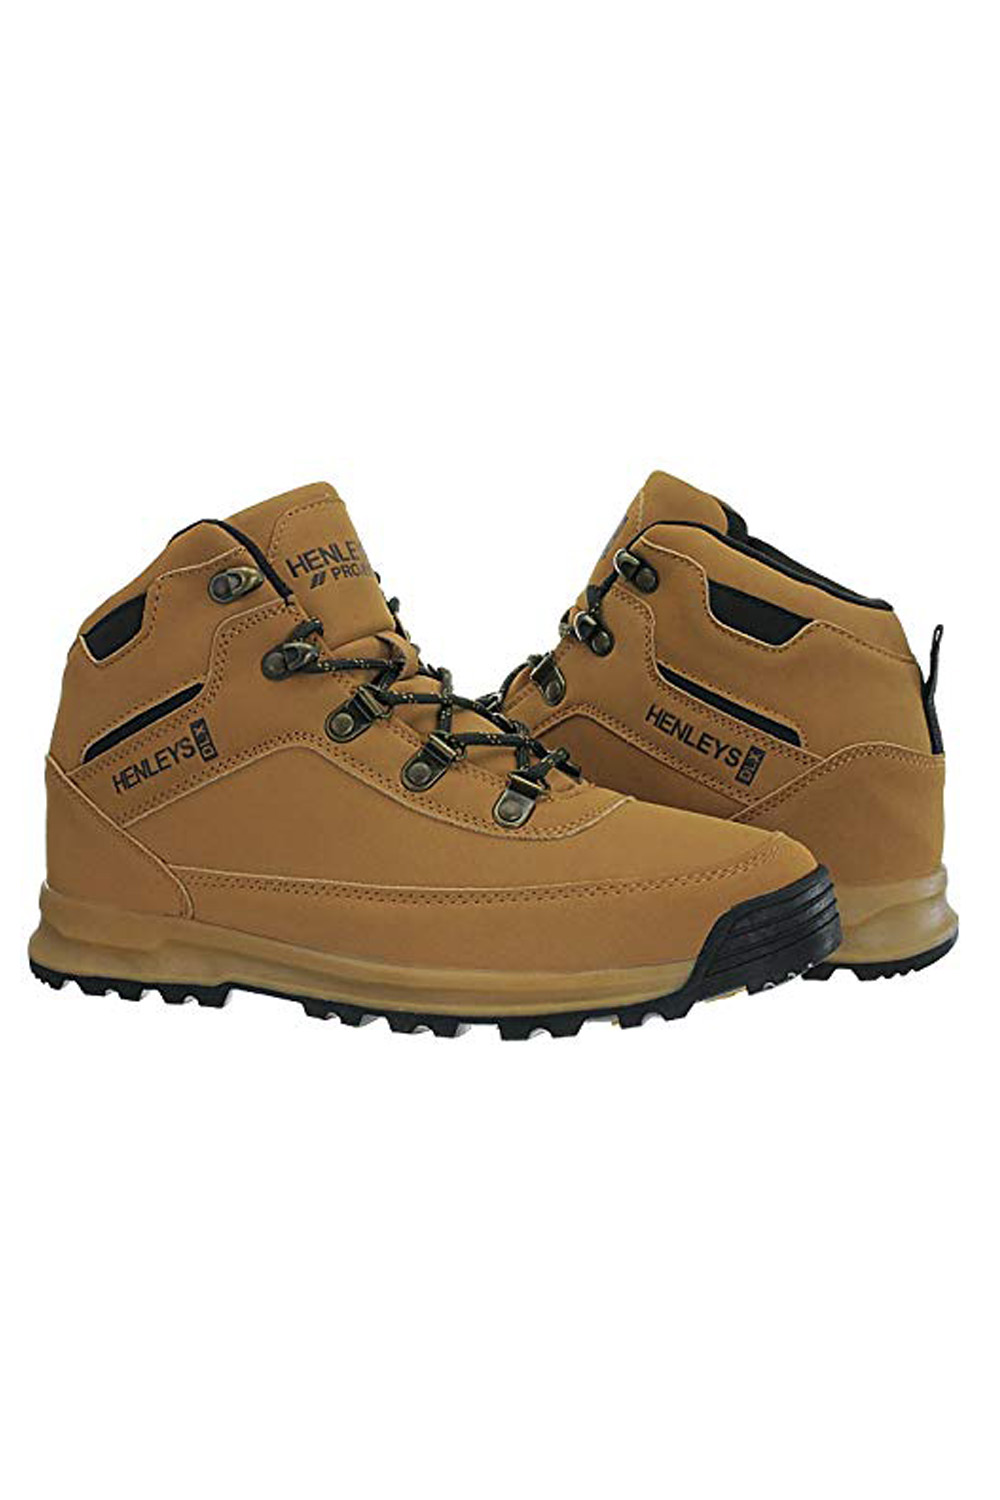 Henleys-Mens-Travis-Hiking-Boots-Walking-Lace-Up-Outdoor-Shoes-Sizes-UK-6-12 thumbnail 3